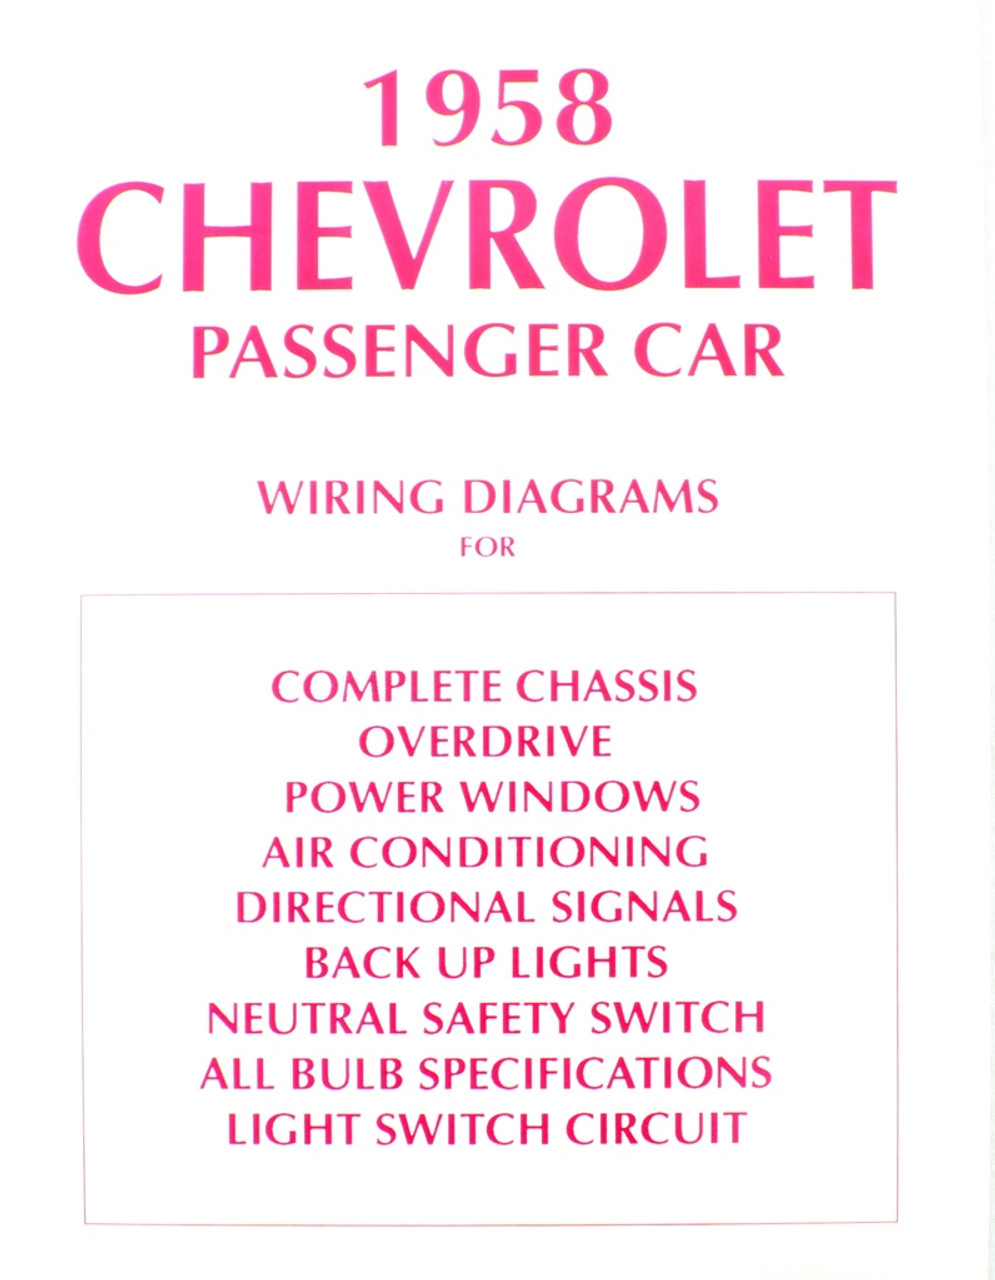 58 Chevy Impala Electrical Wiring Diagram Manual 1958 I 5 Classic 1965 Ac